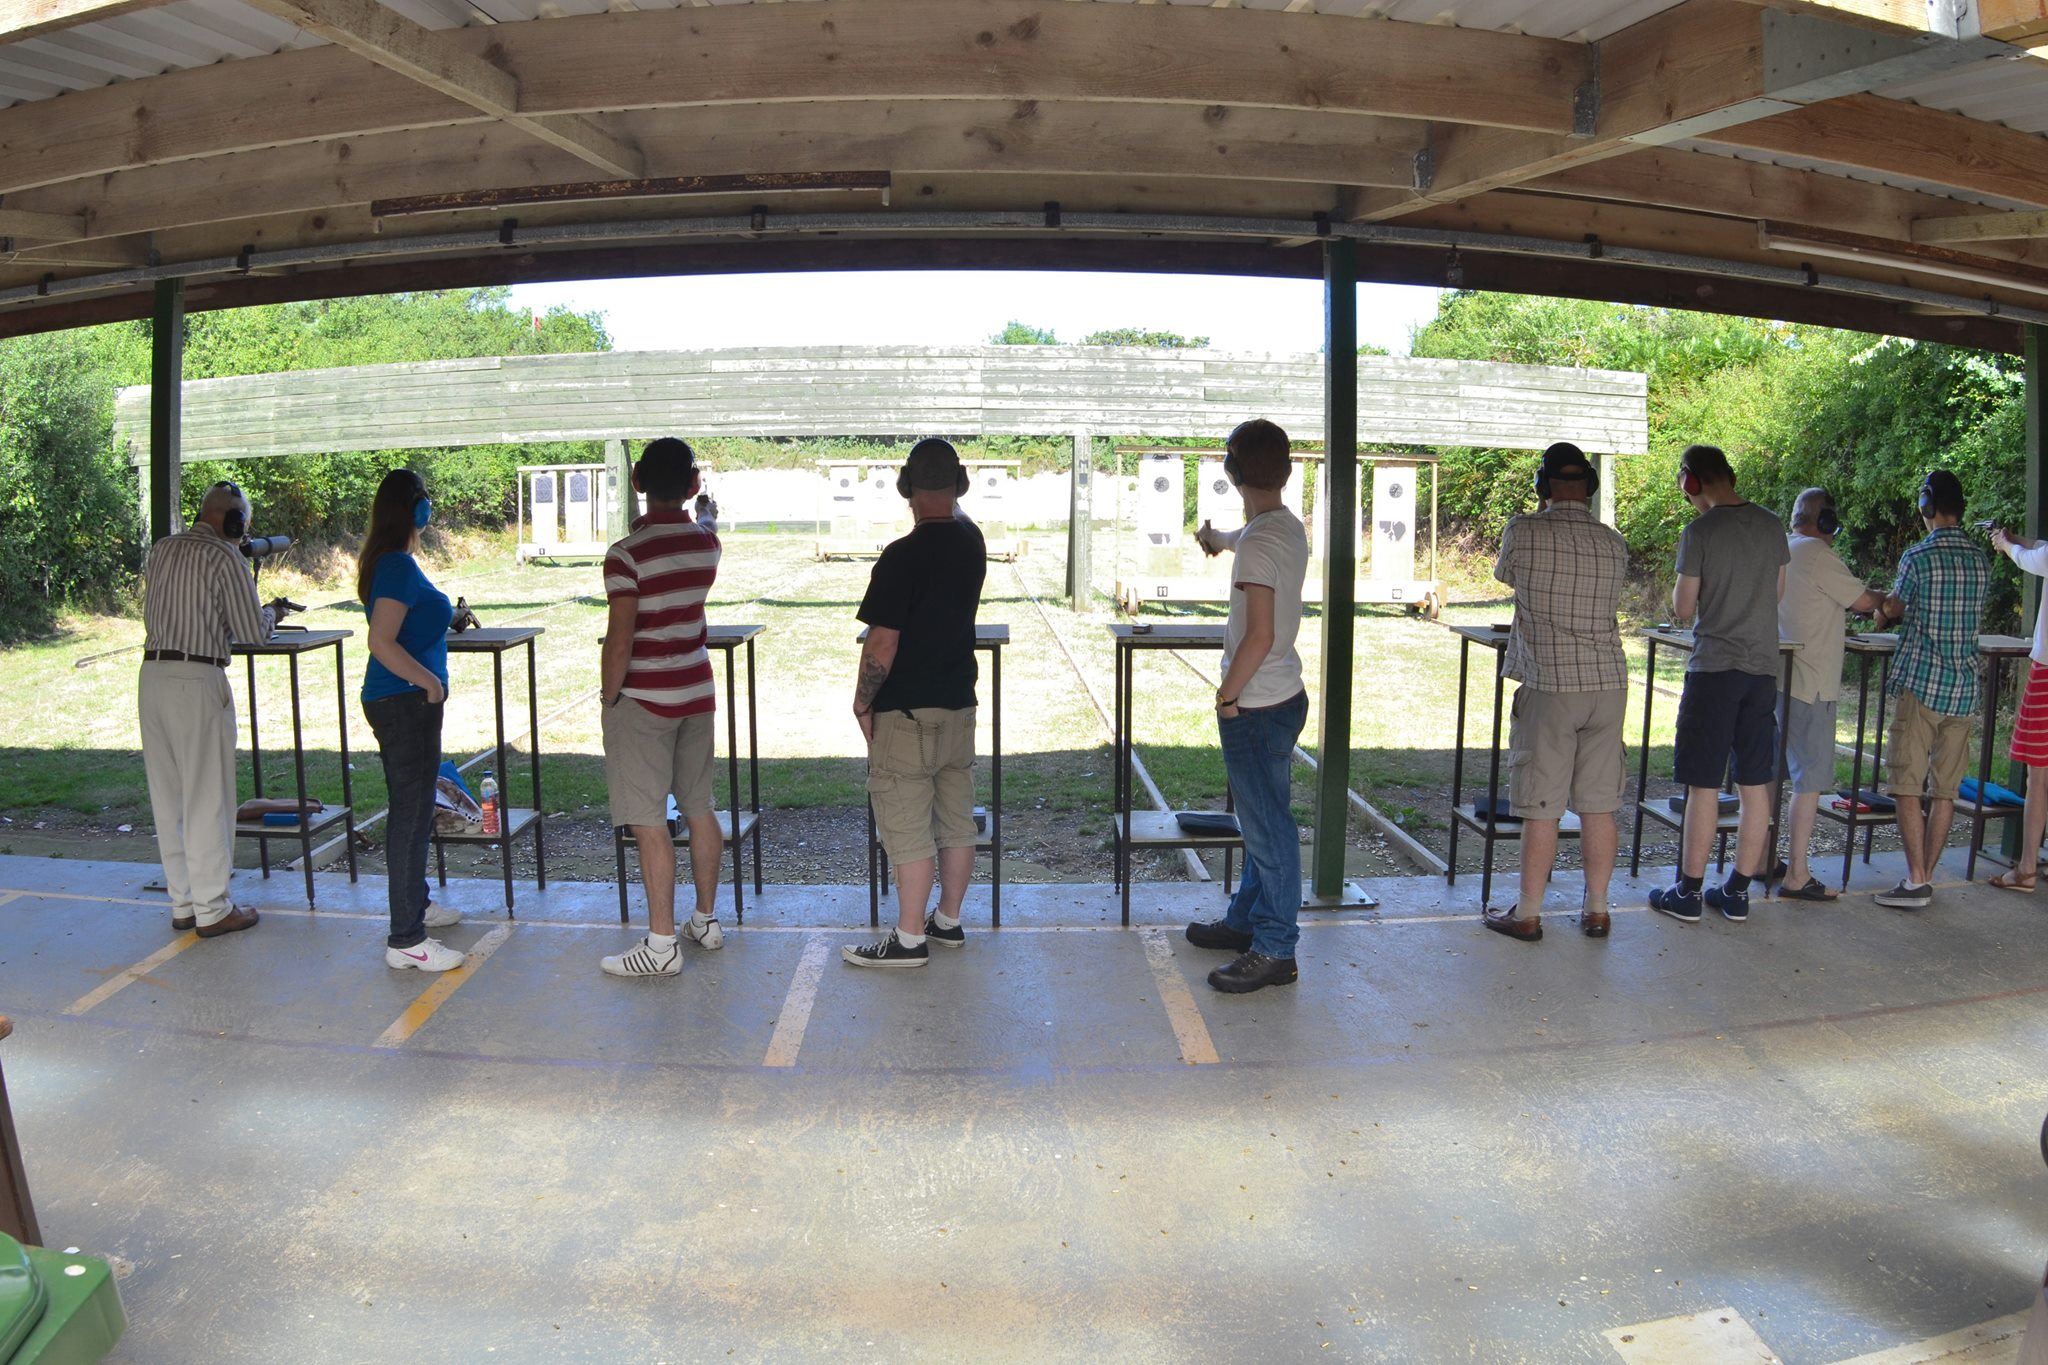 About the Jersey Pistol Club